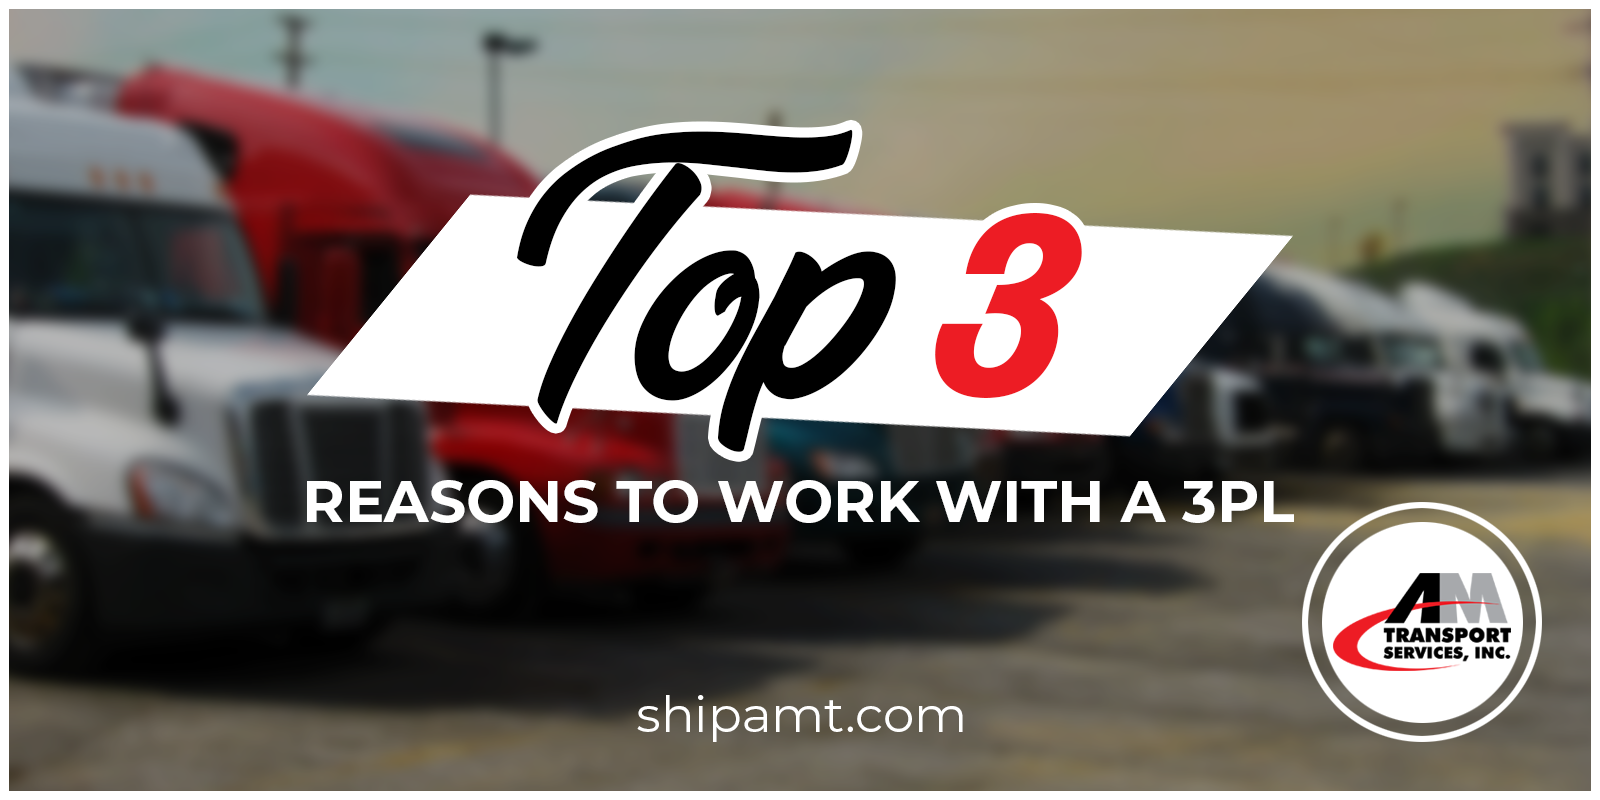 Picture of Trucks with Top 3 Reasons to Work with a 3PL